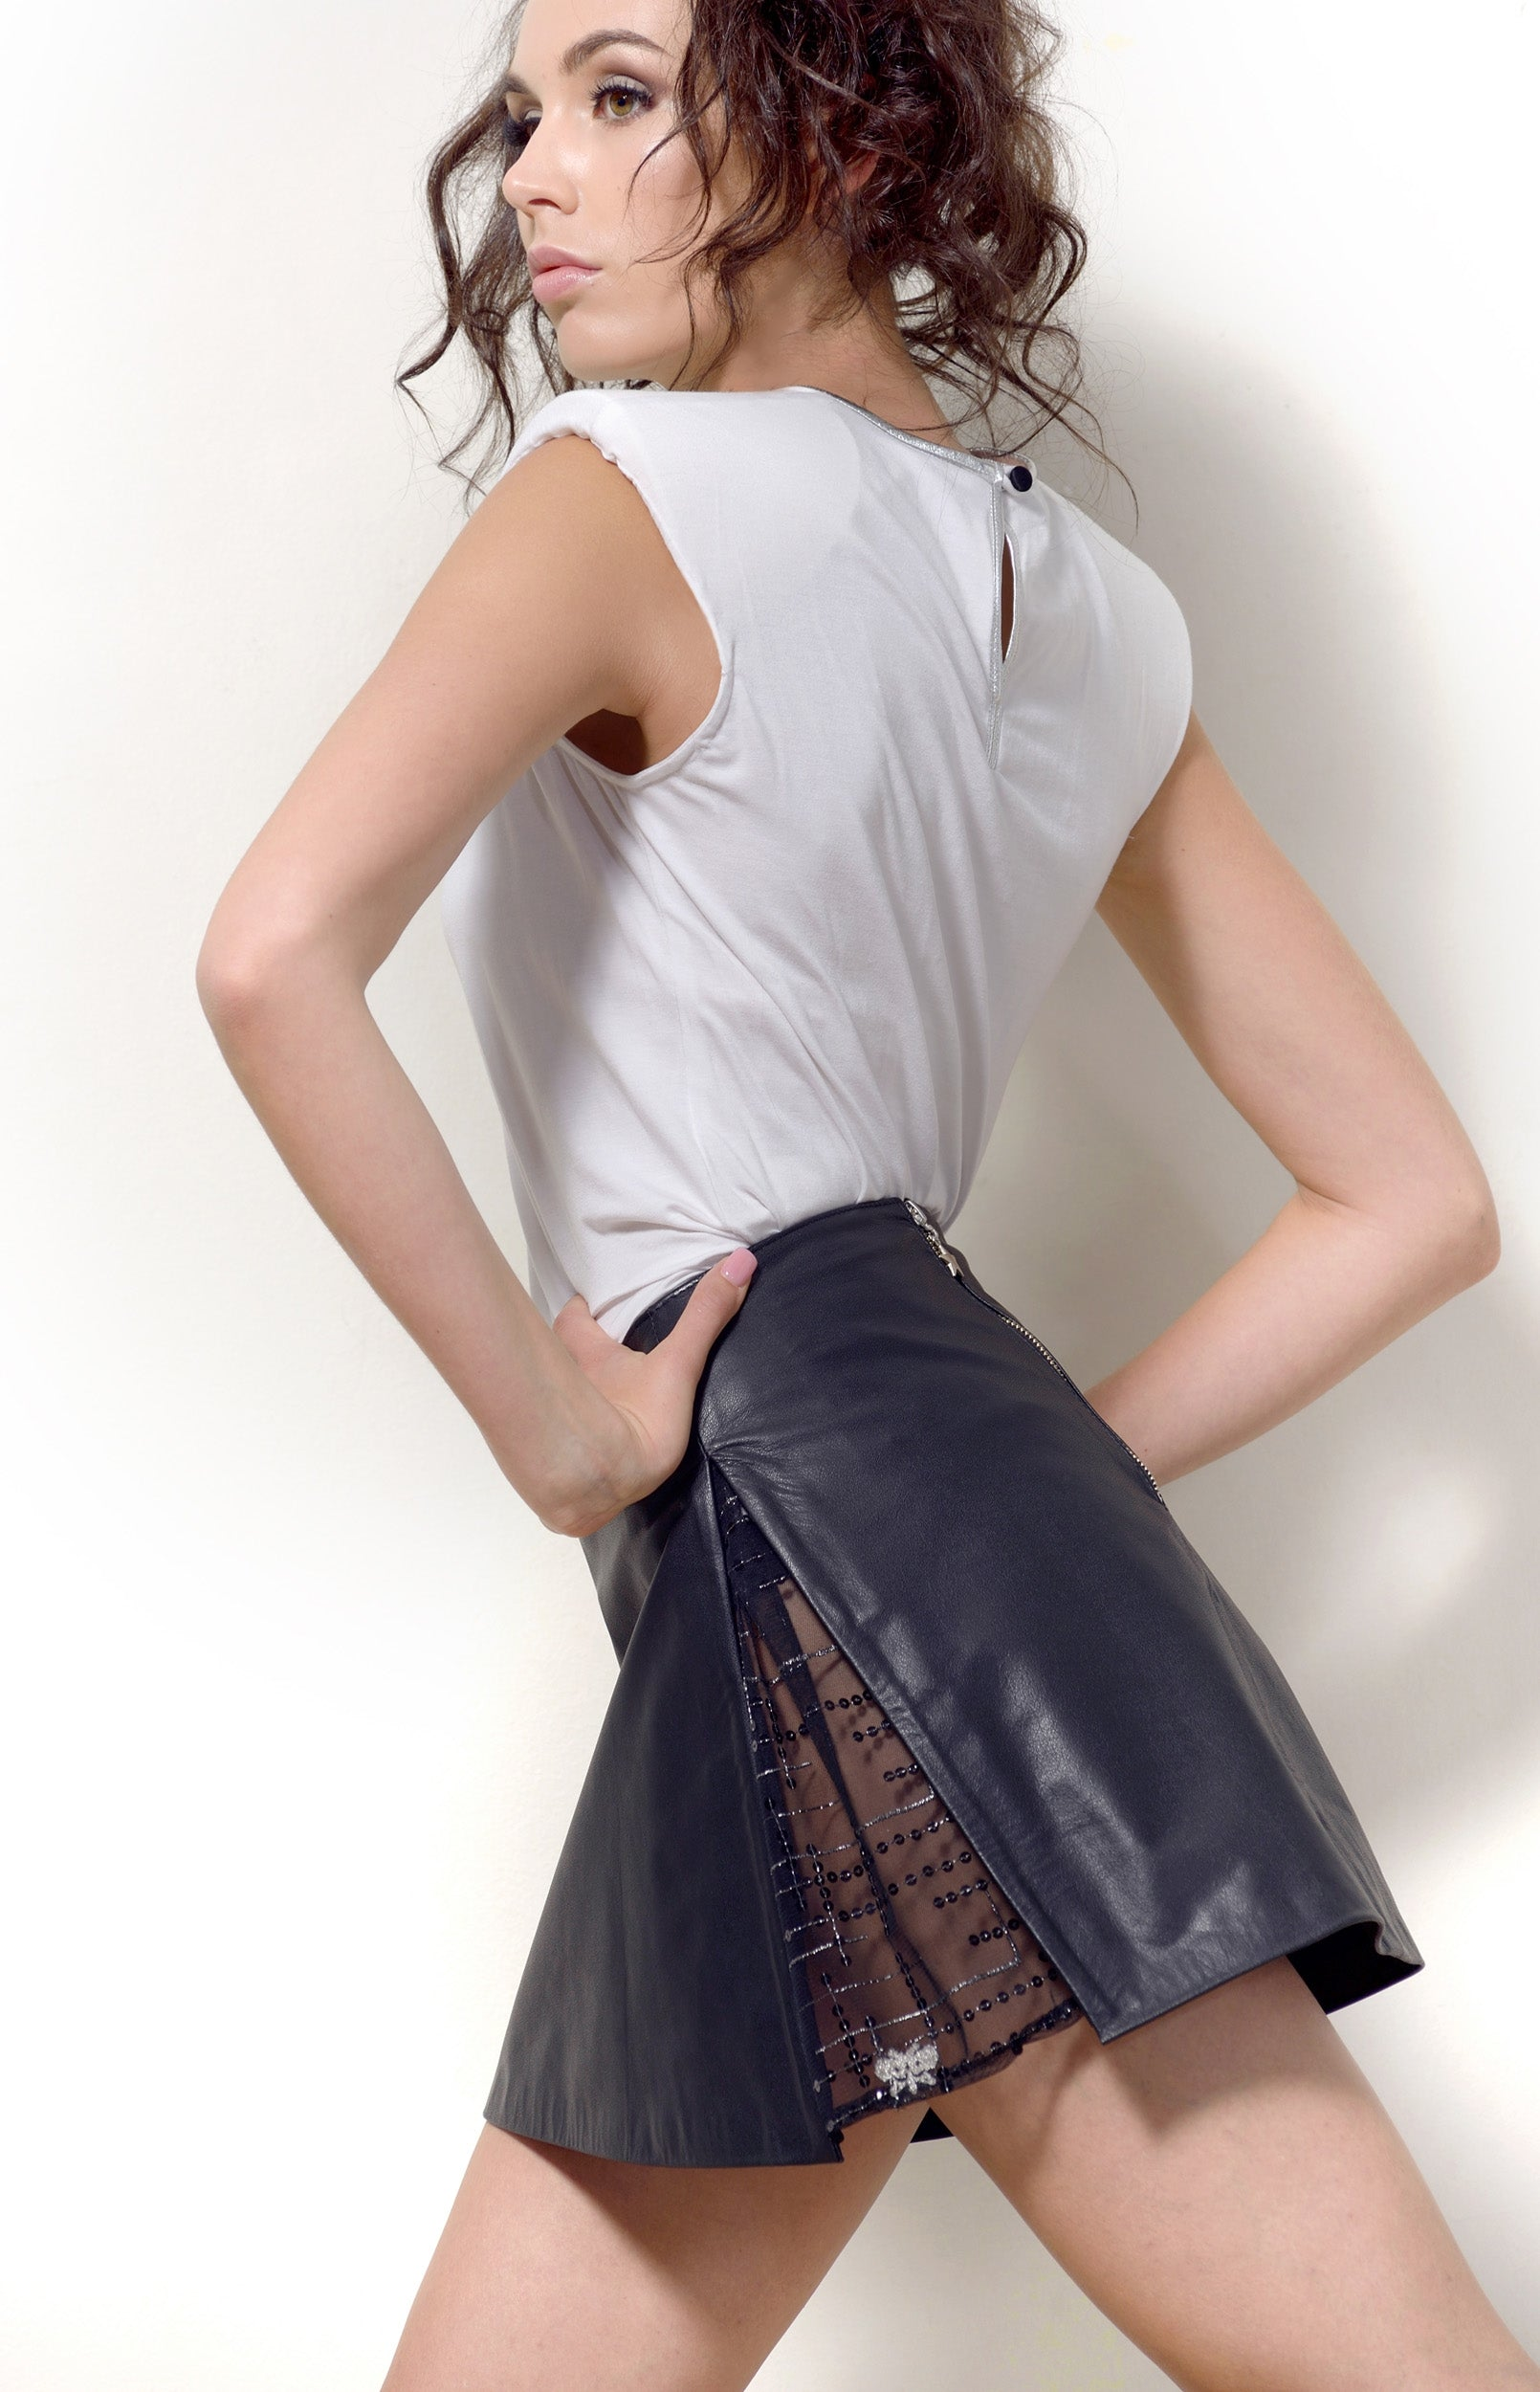 Leather Skirt A-line, Black Leather